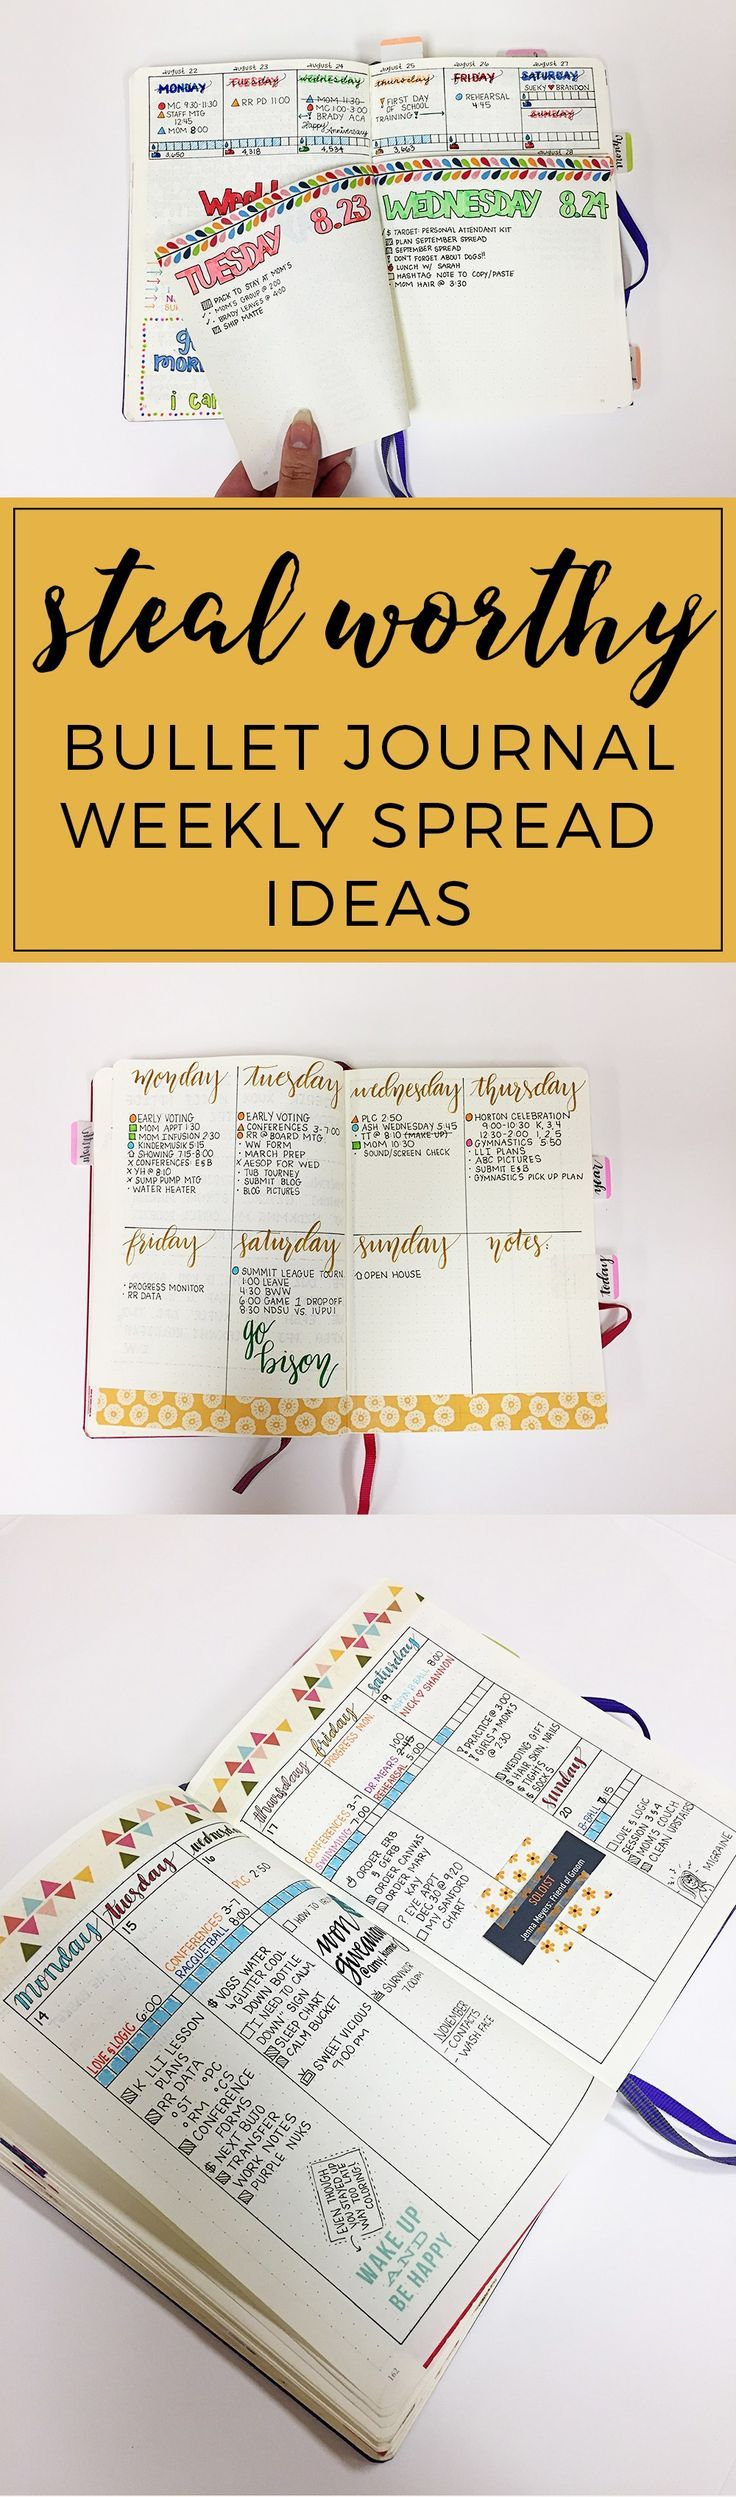 19558 best images about bullet journal junkies on pinterest spreads productivity and. Black Bedroom Furniture Sets. Home Design Ideas